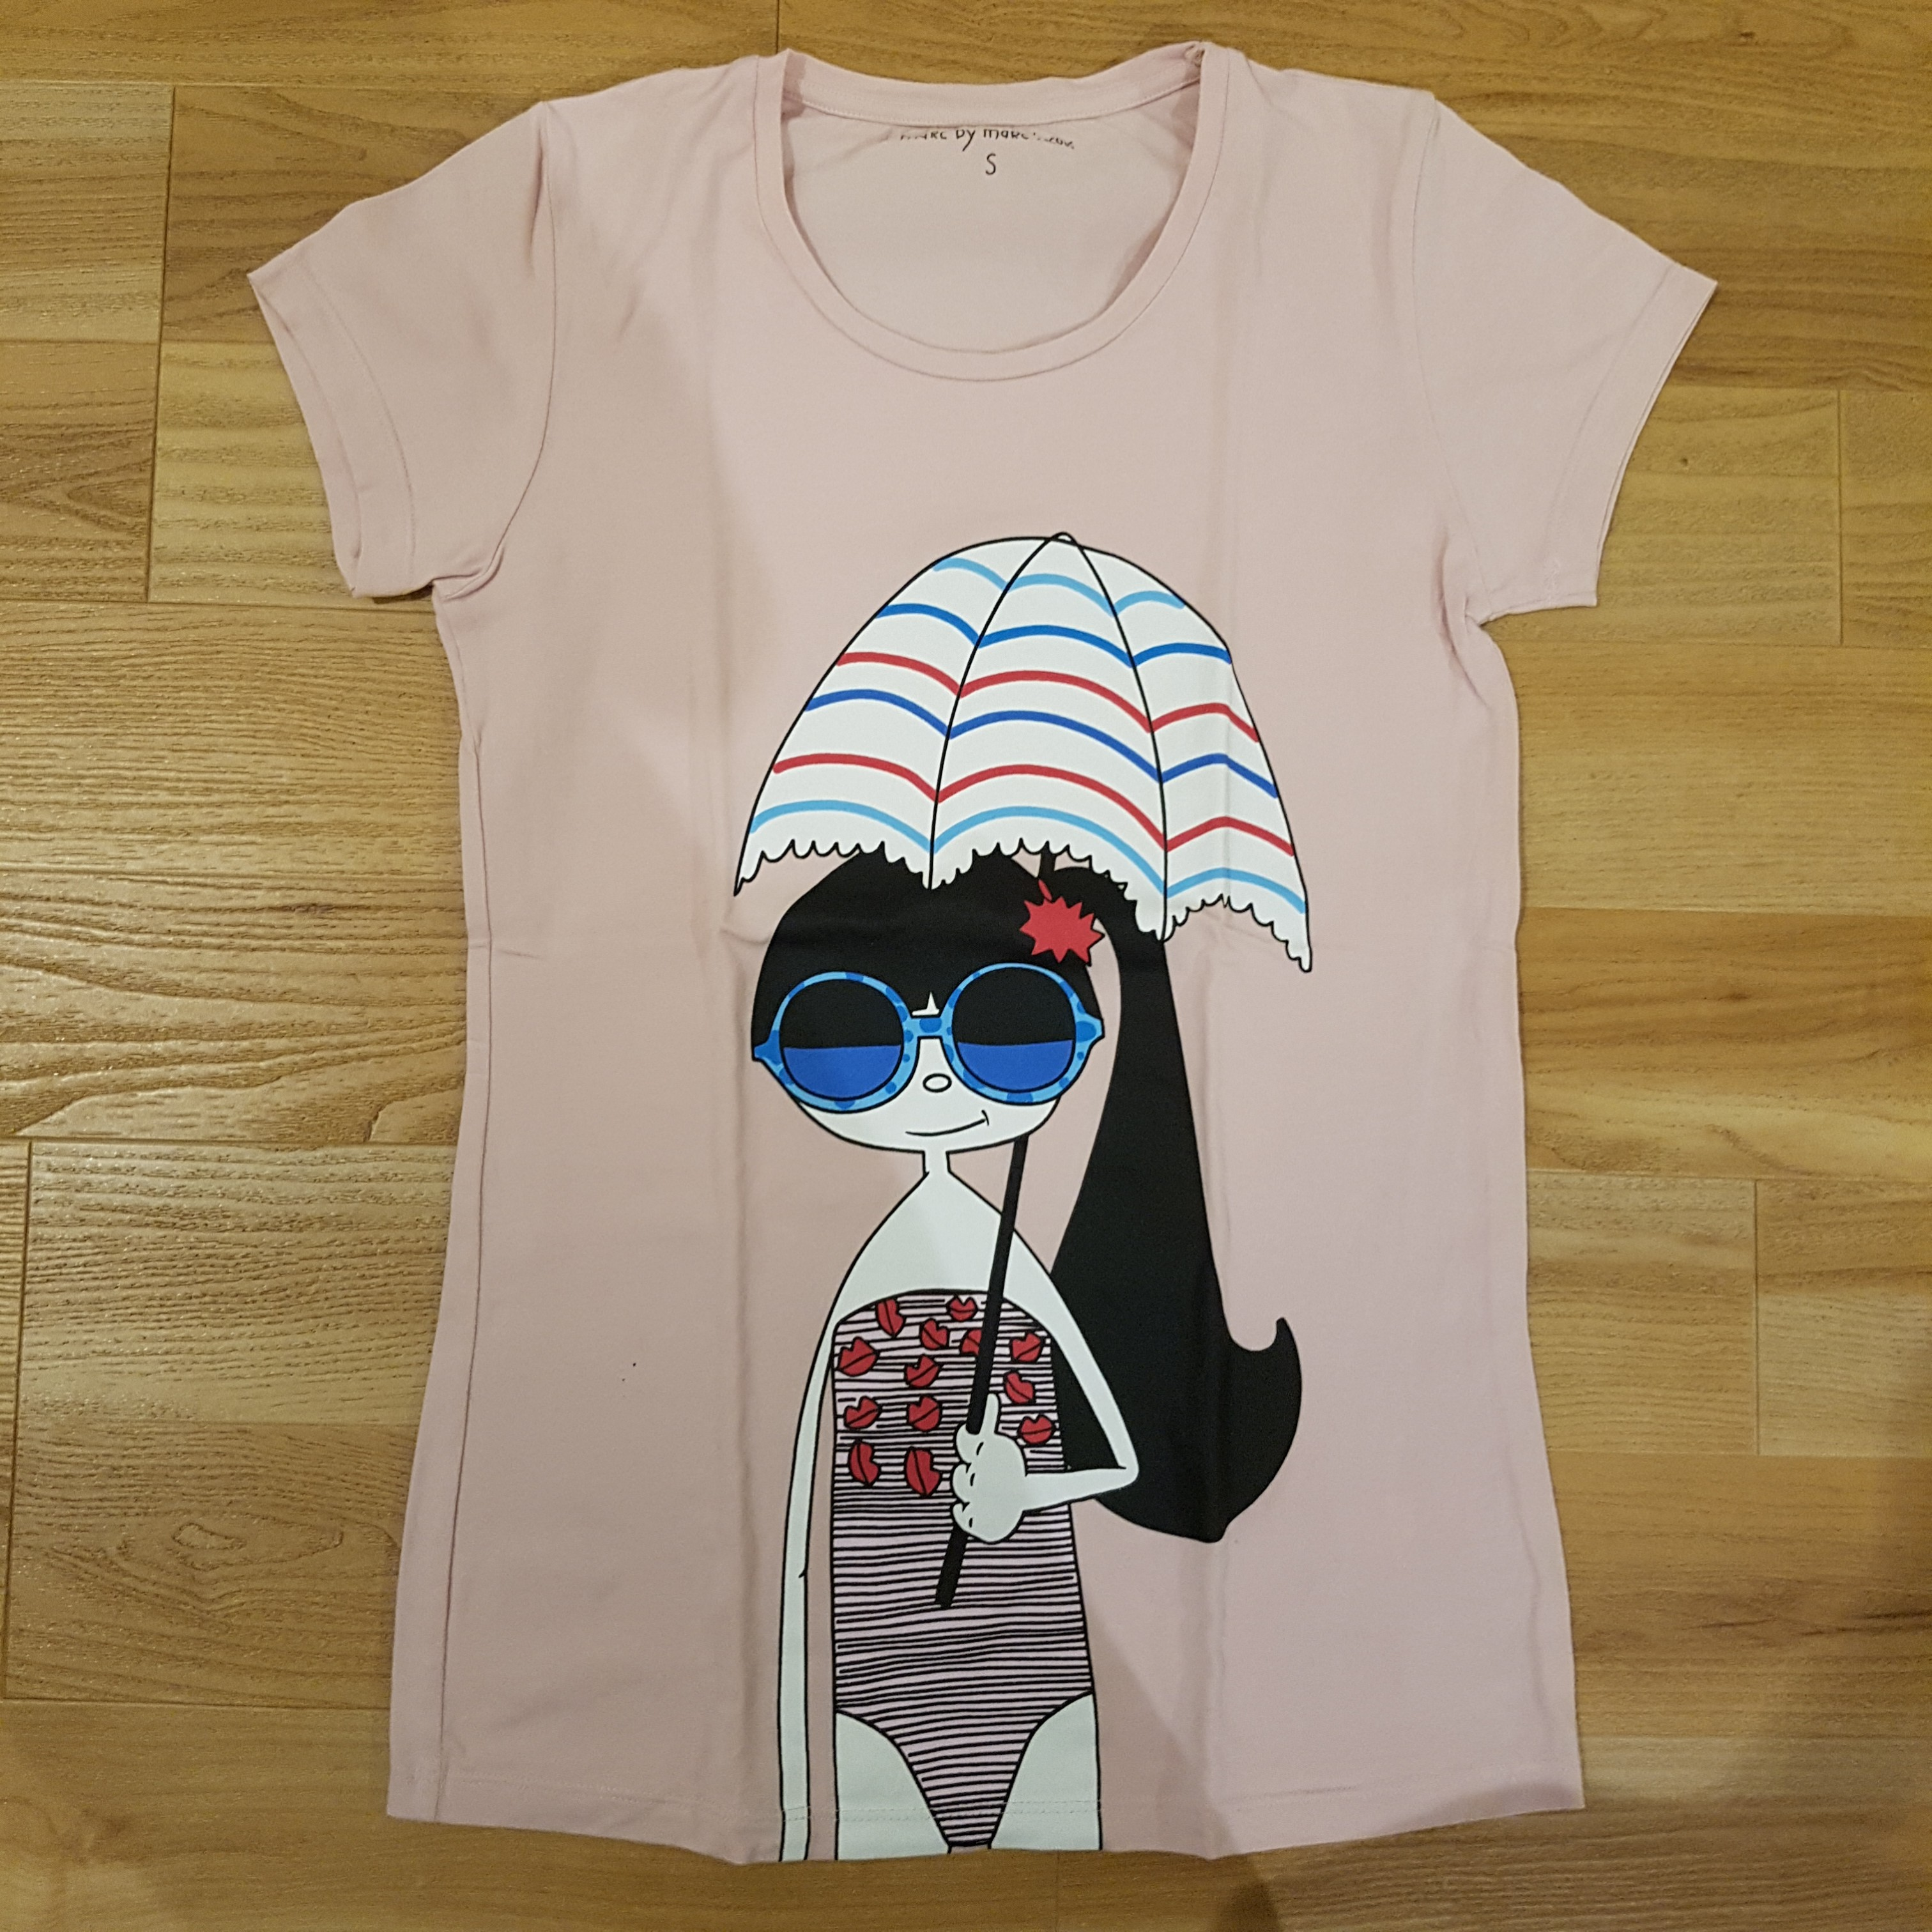 Marc Jacobs inspired Tshirt